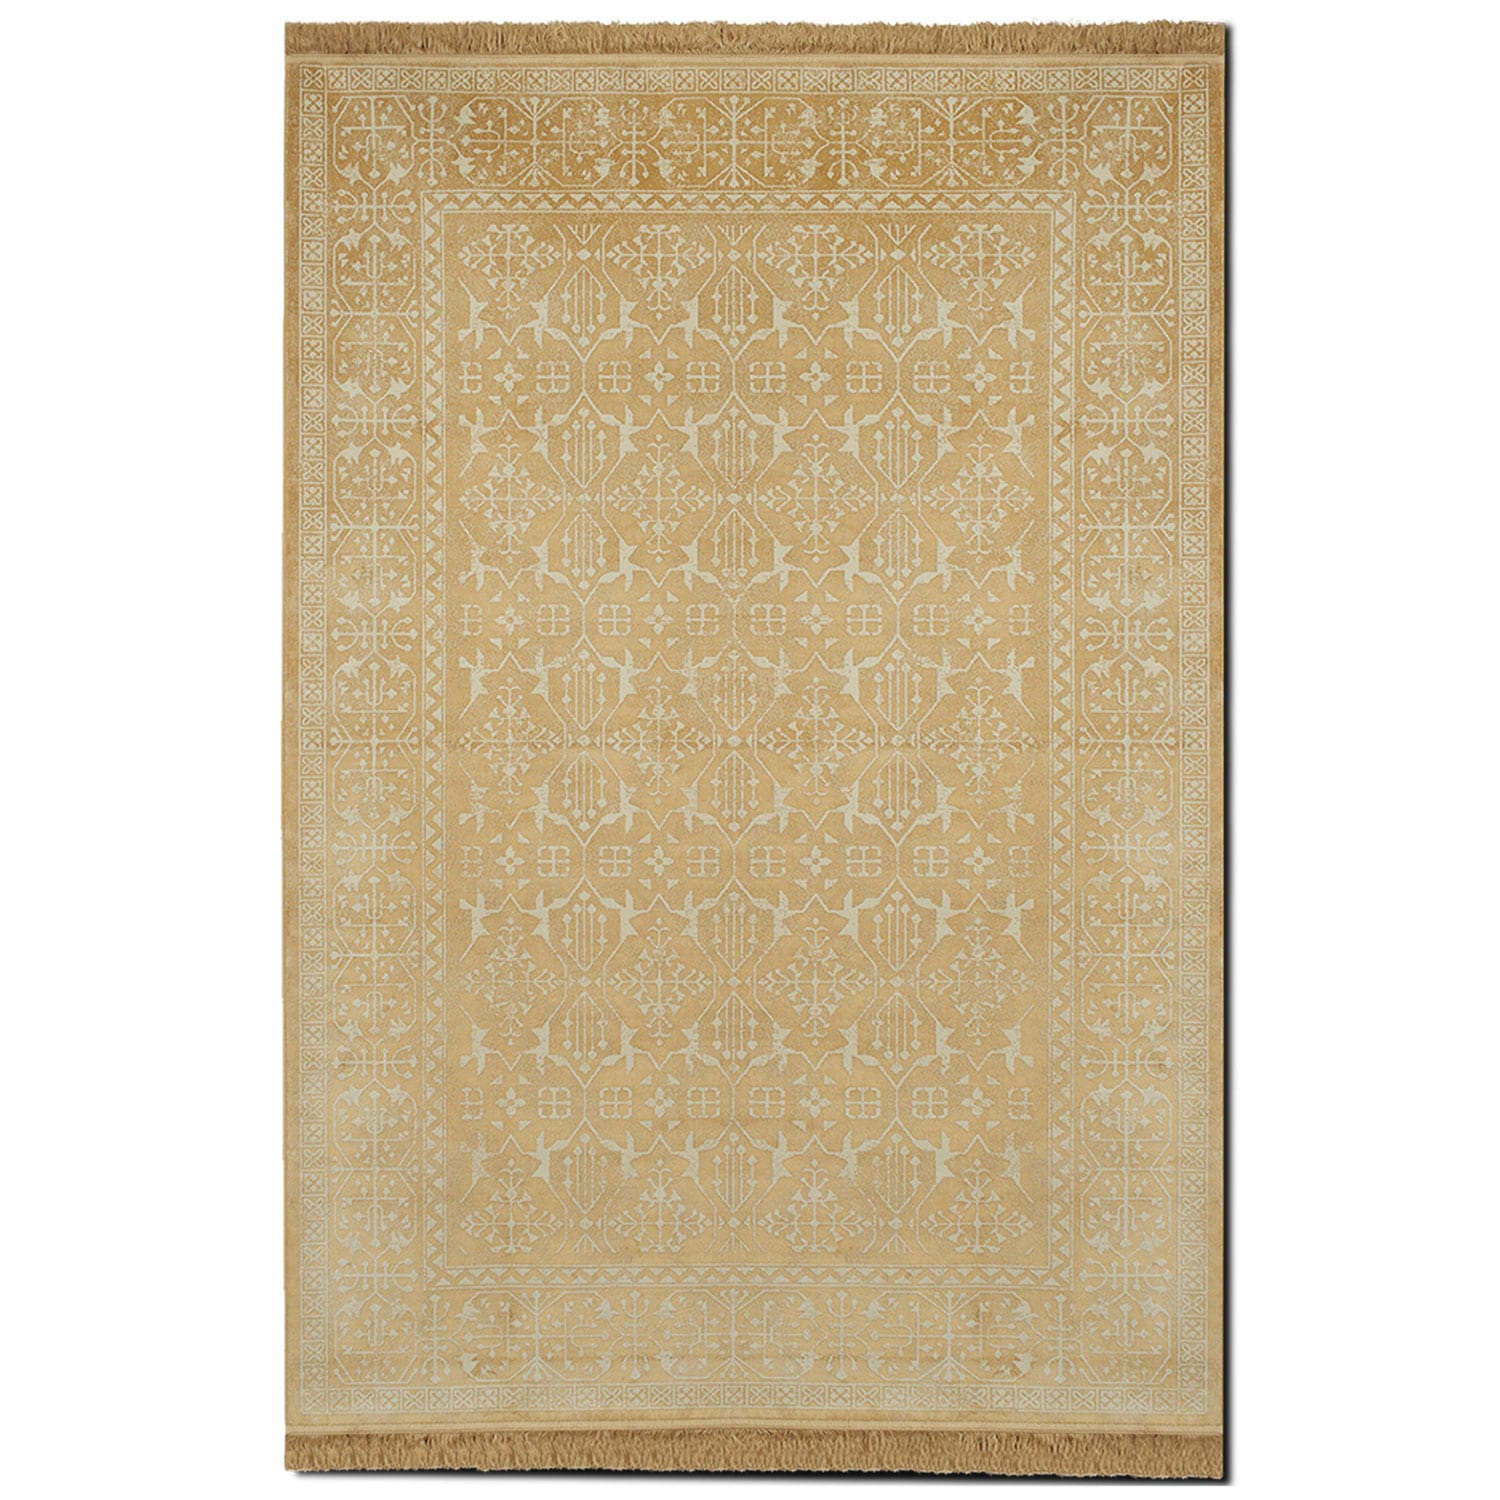 Rugs - Sonoma 5' x 8' Area Rug - Yellow and White